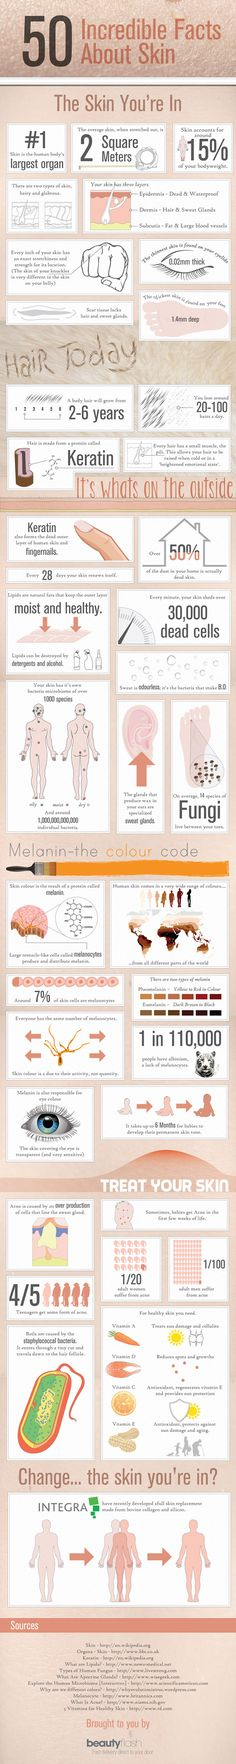 50 Incredible Facts About Skin #skintelligent #skinfo #infographic